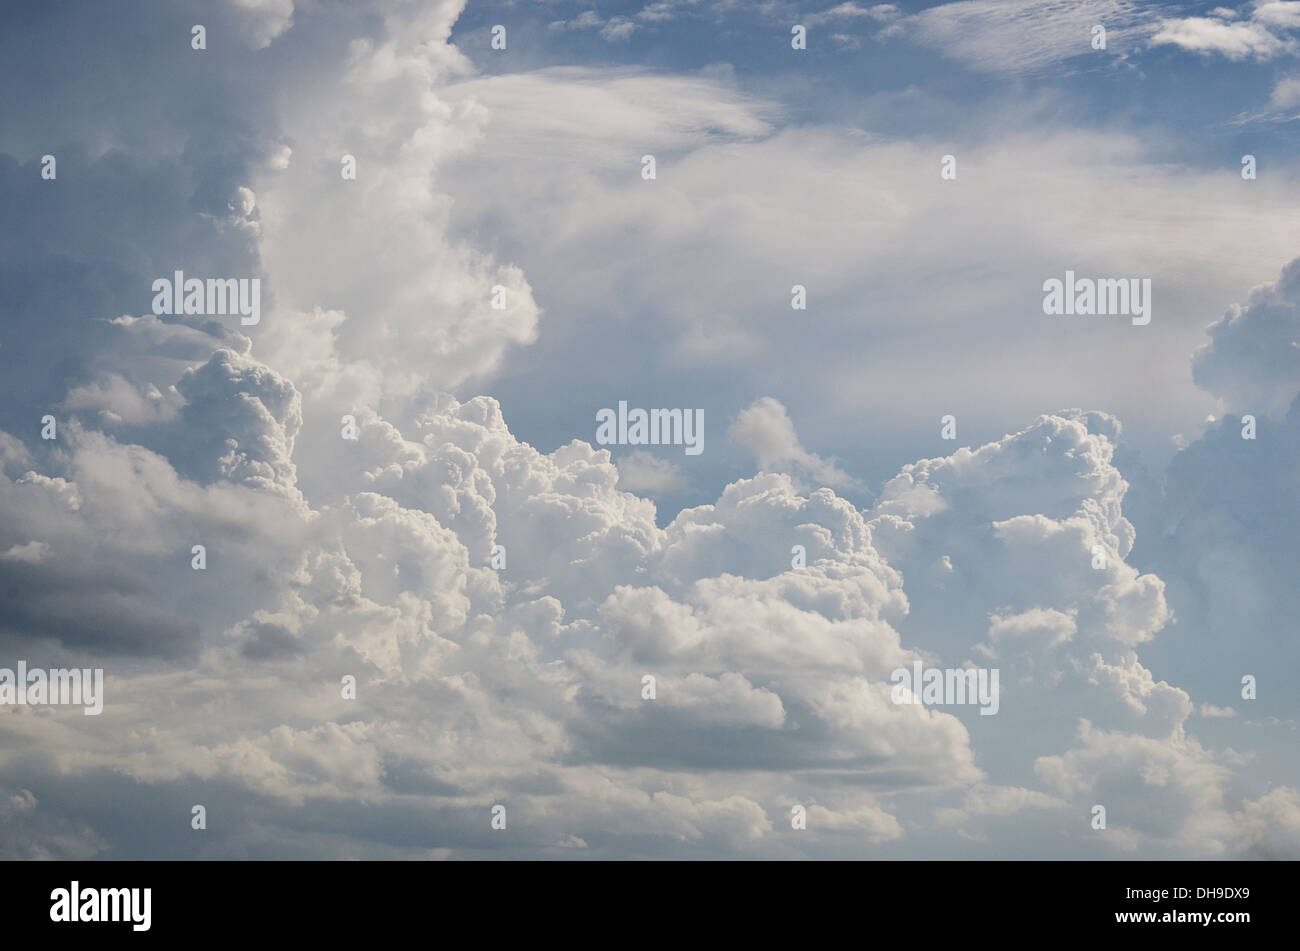 The Cumulus in the sky - Stock Image